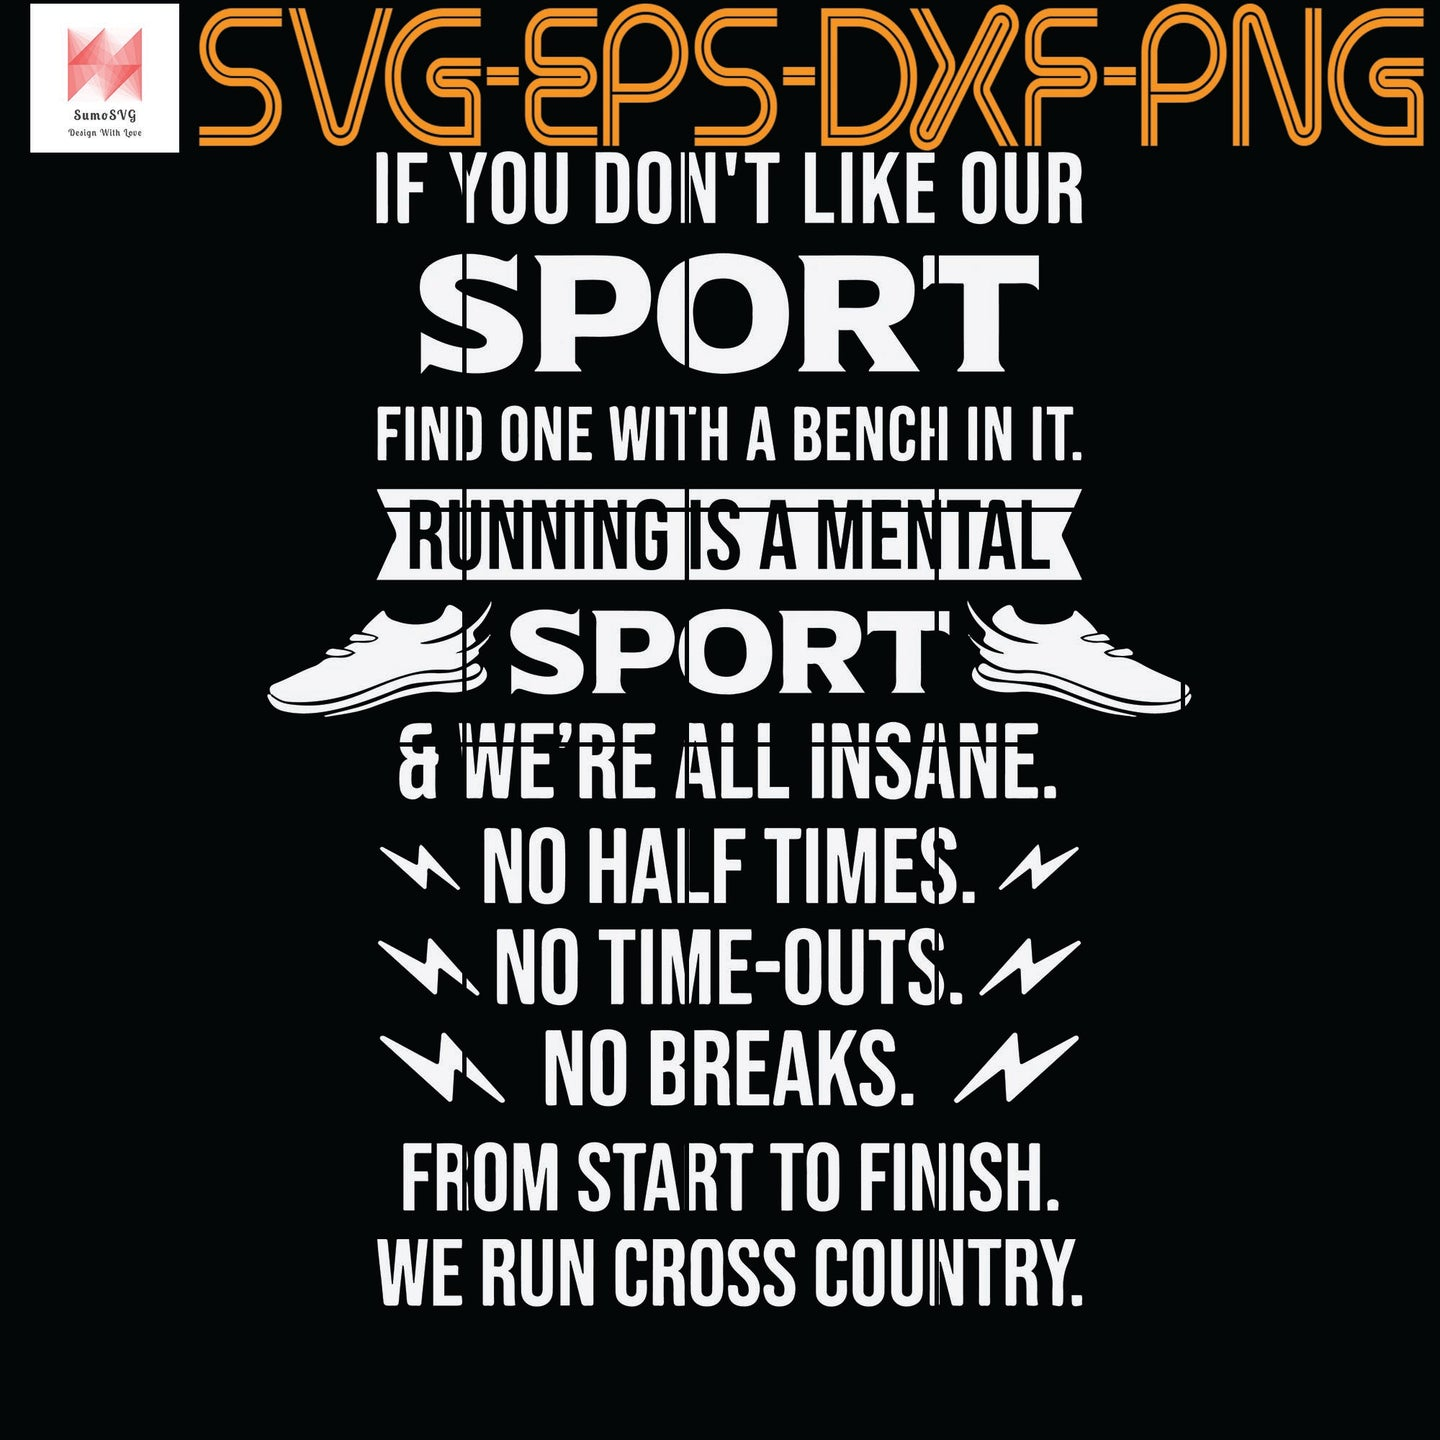 We Run Cross Country - Runner Running Racers Funny Gift, Quotes, Funny Quotes, Cameo, Cricut, Silhouette, SVG, PNG, Eps, DXF, Digital Download